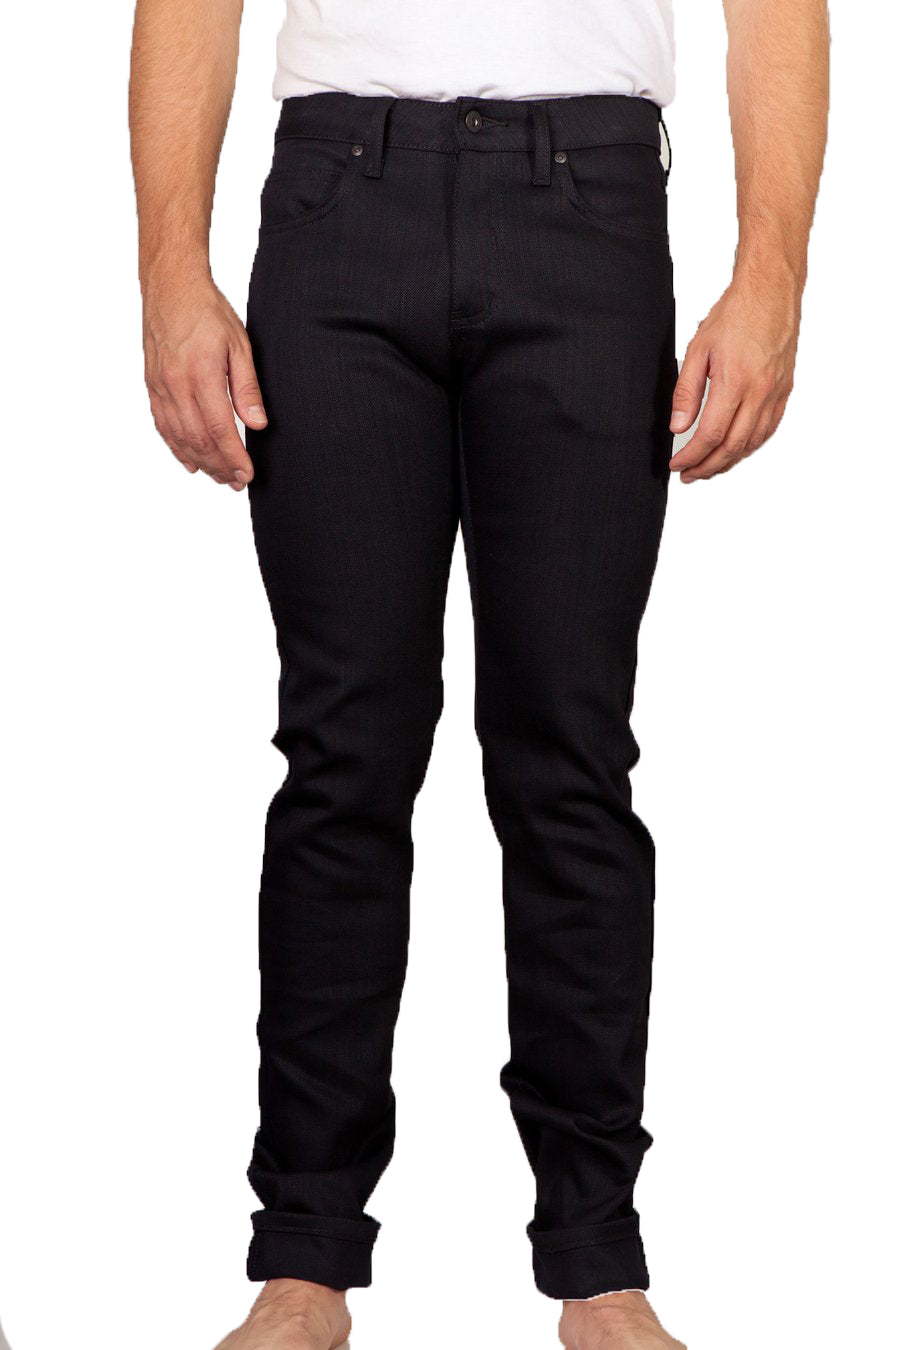 Jeans Super Guy - Black Power Stretch